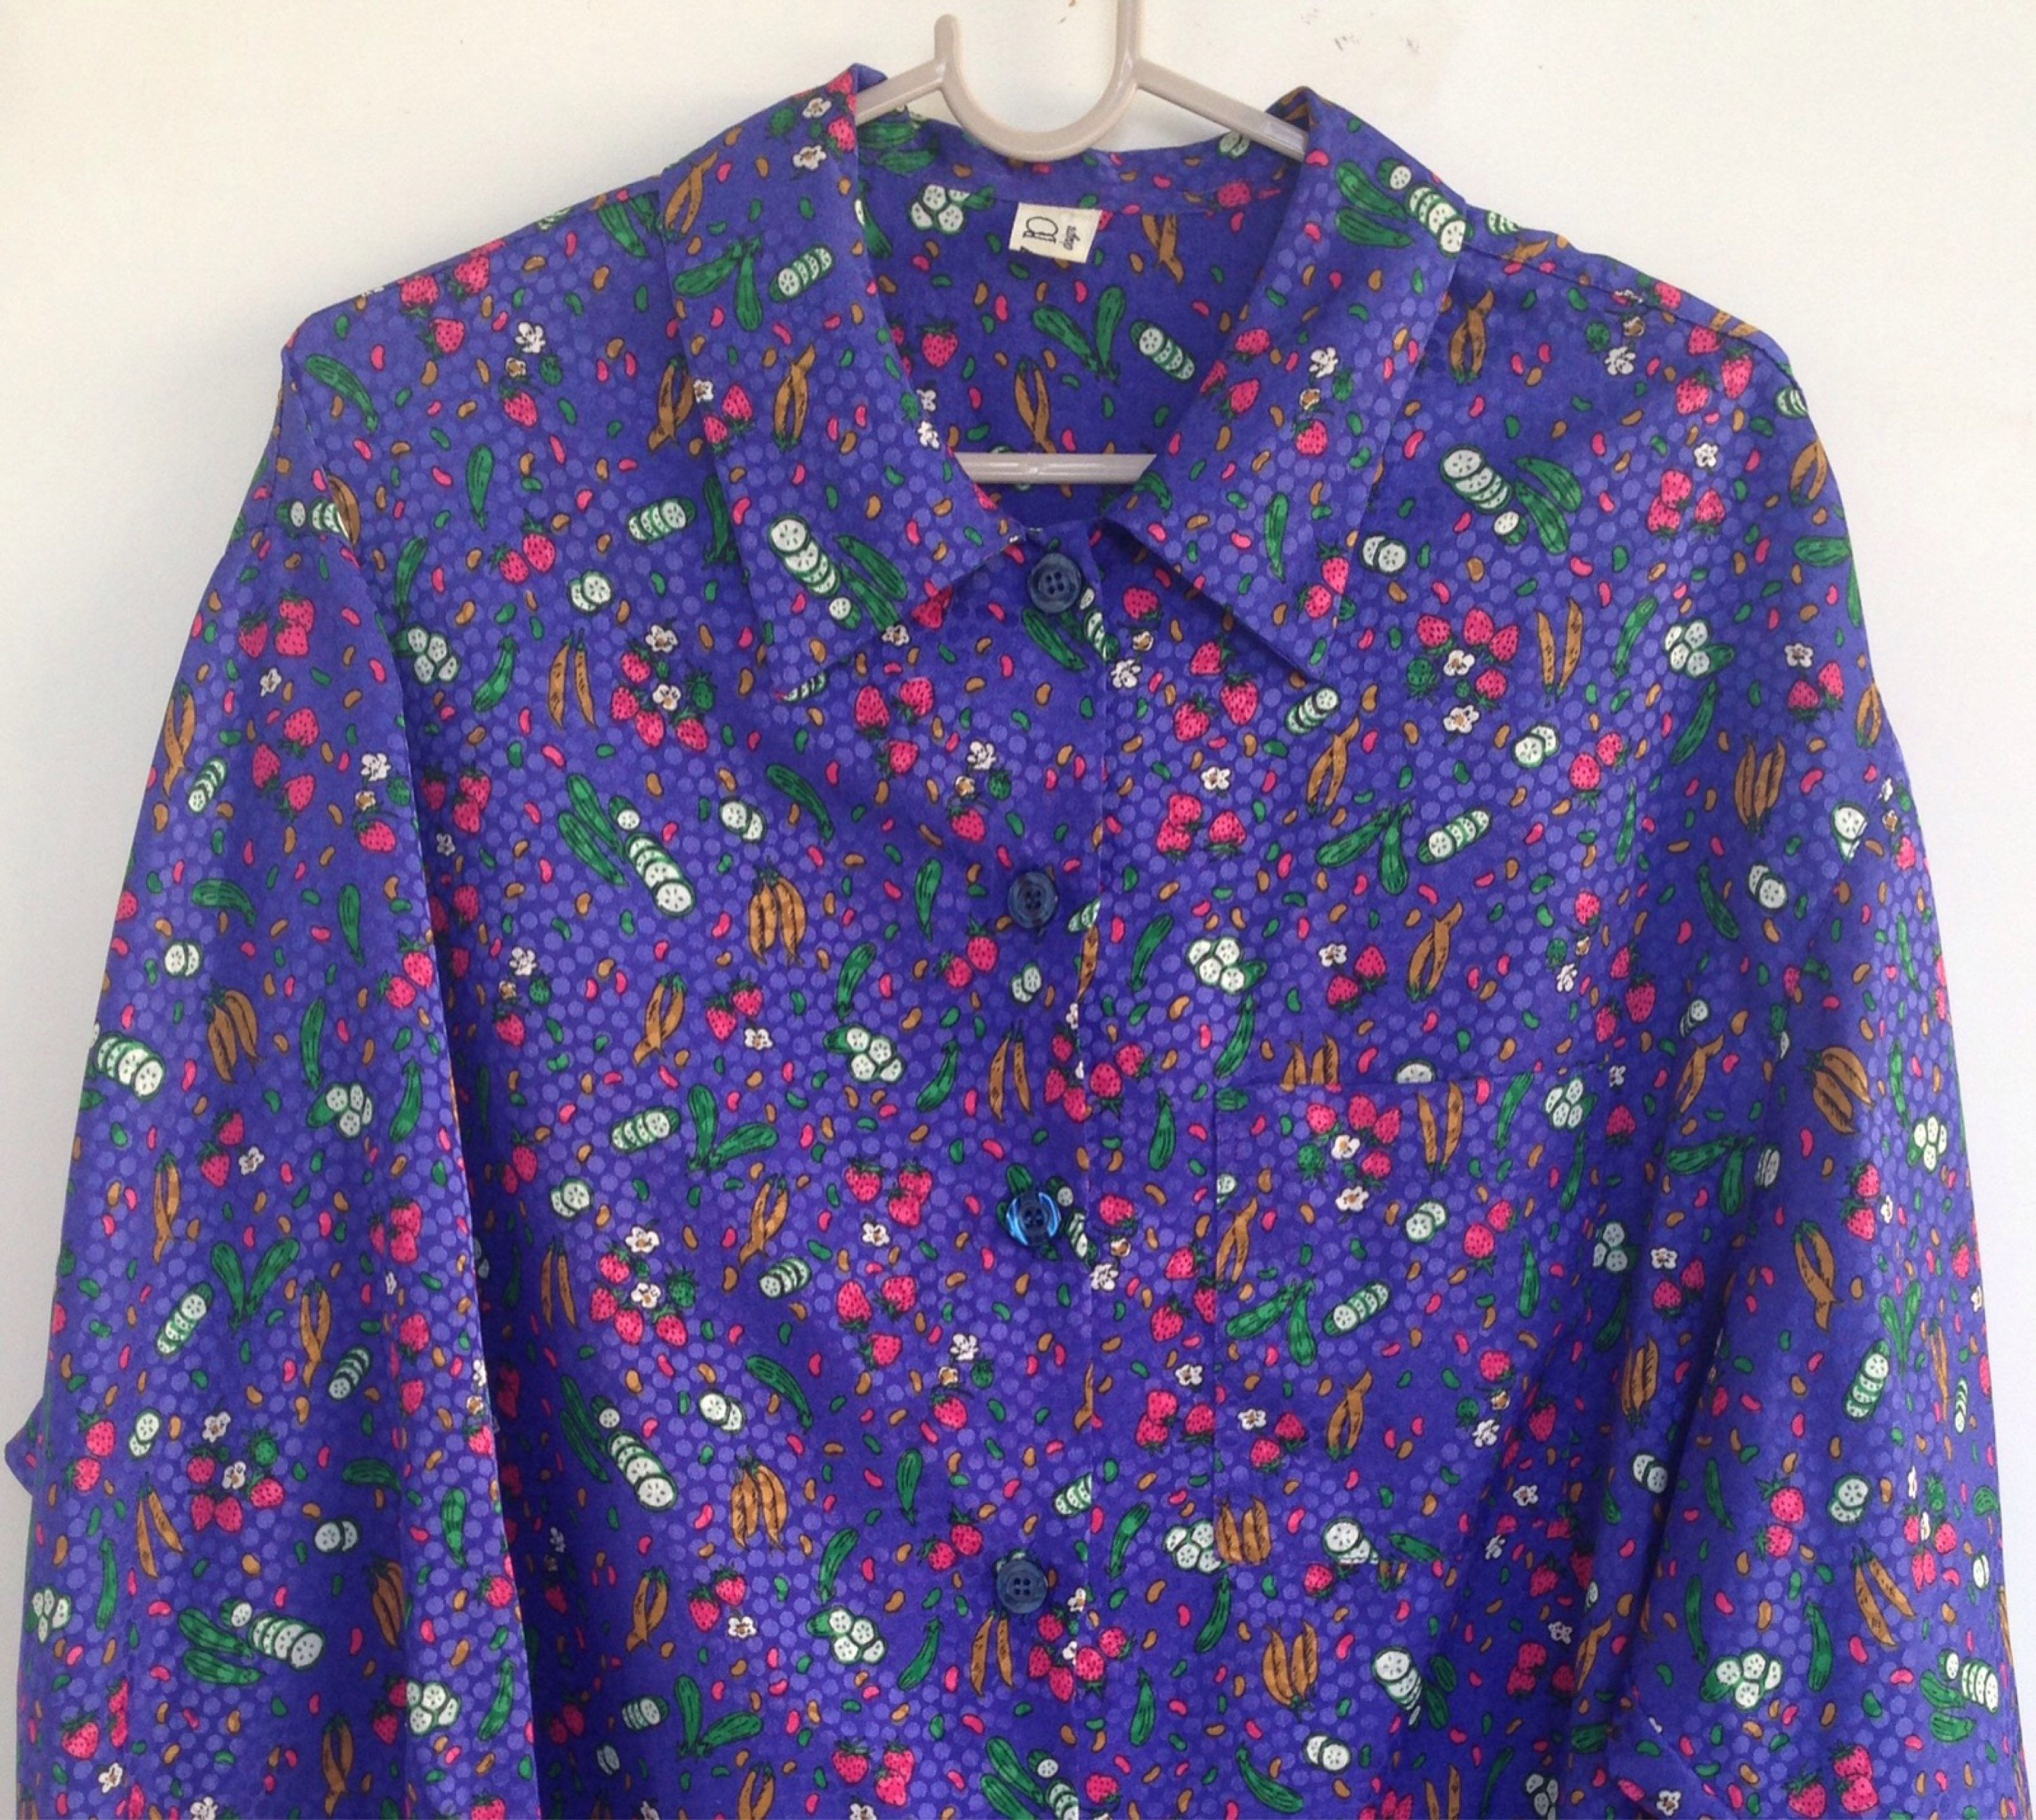 Satin Rare Billy Bo Deep Purple Shirt An 80s Vntg Authentic Collectable Billy Bo Garment That Features Strawberries Beans Cucumbers Satin Shirt Disco Shirt Greek Fashion